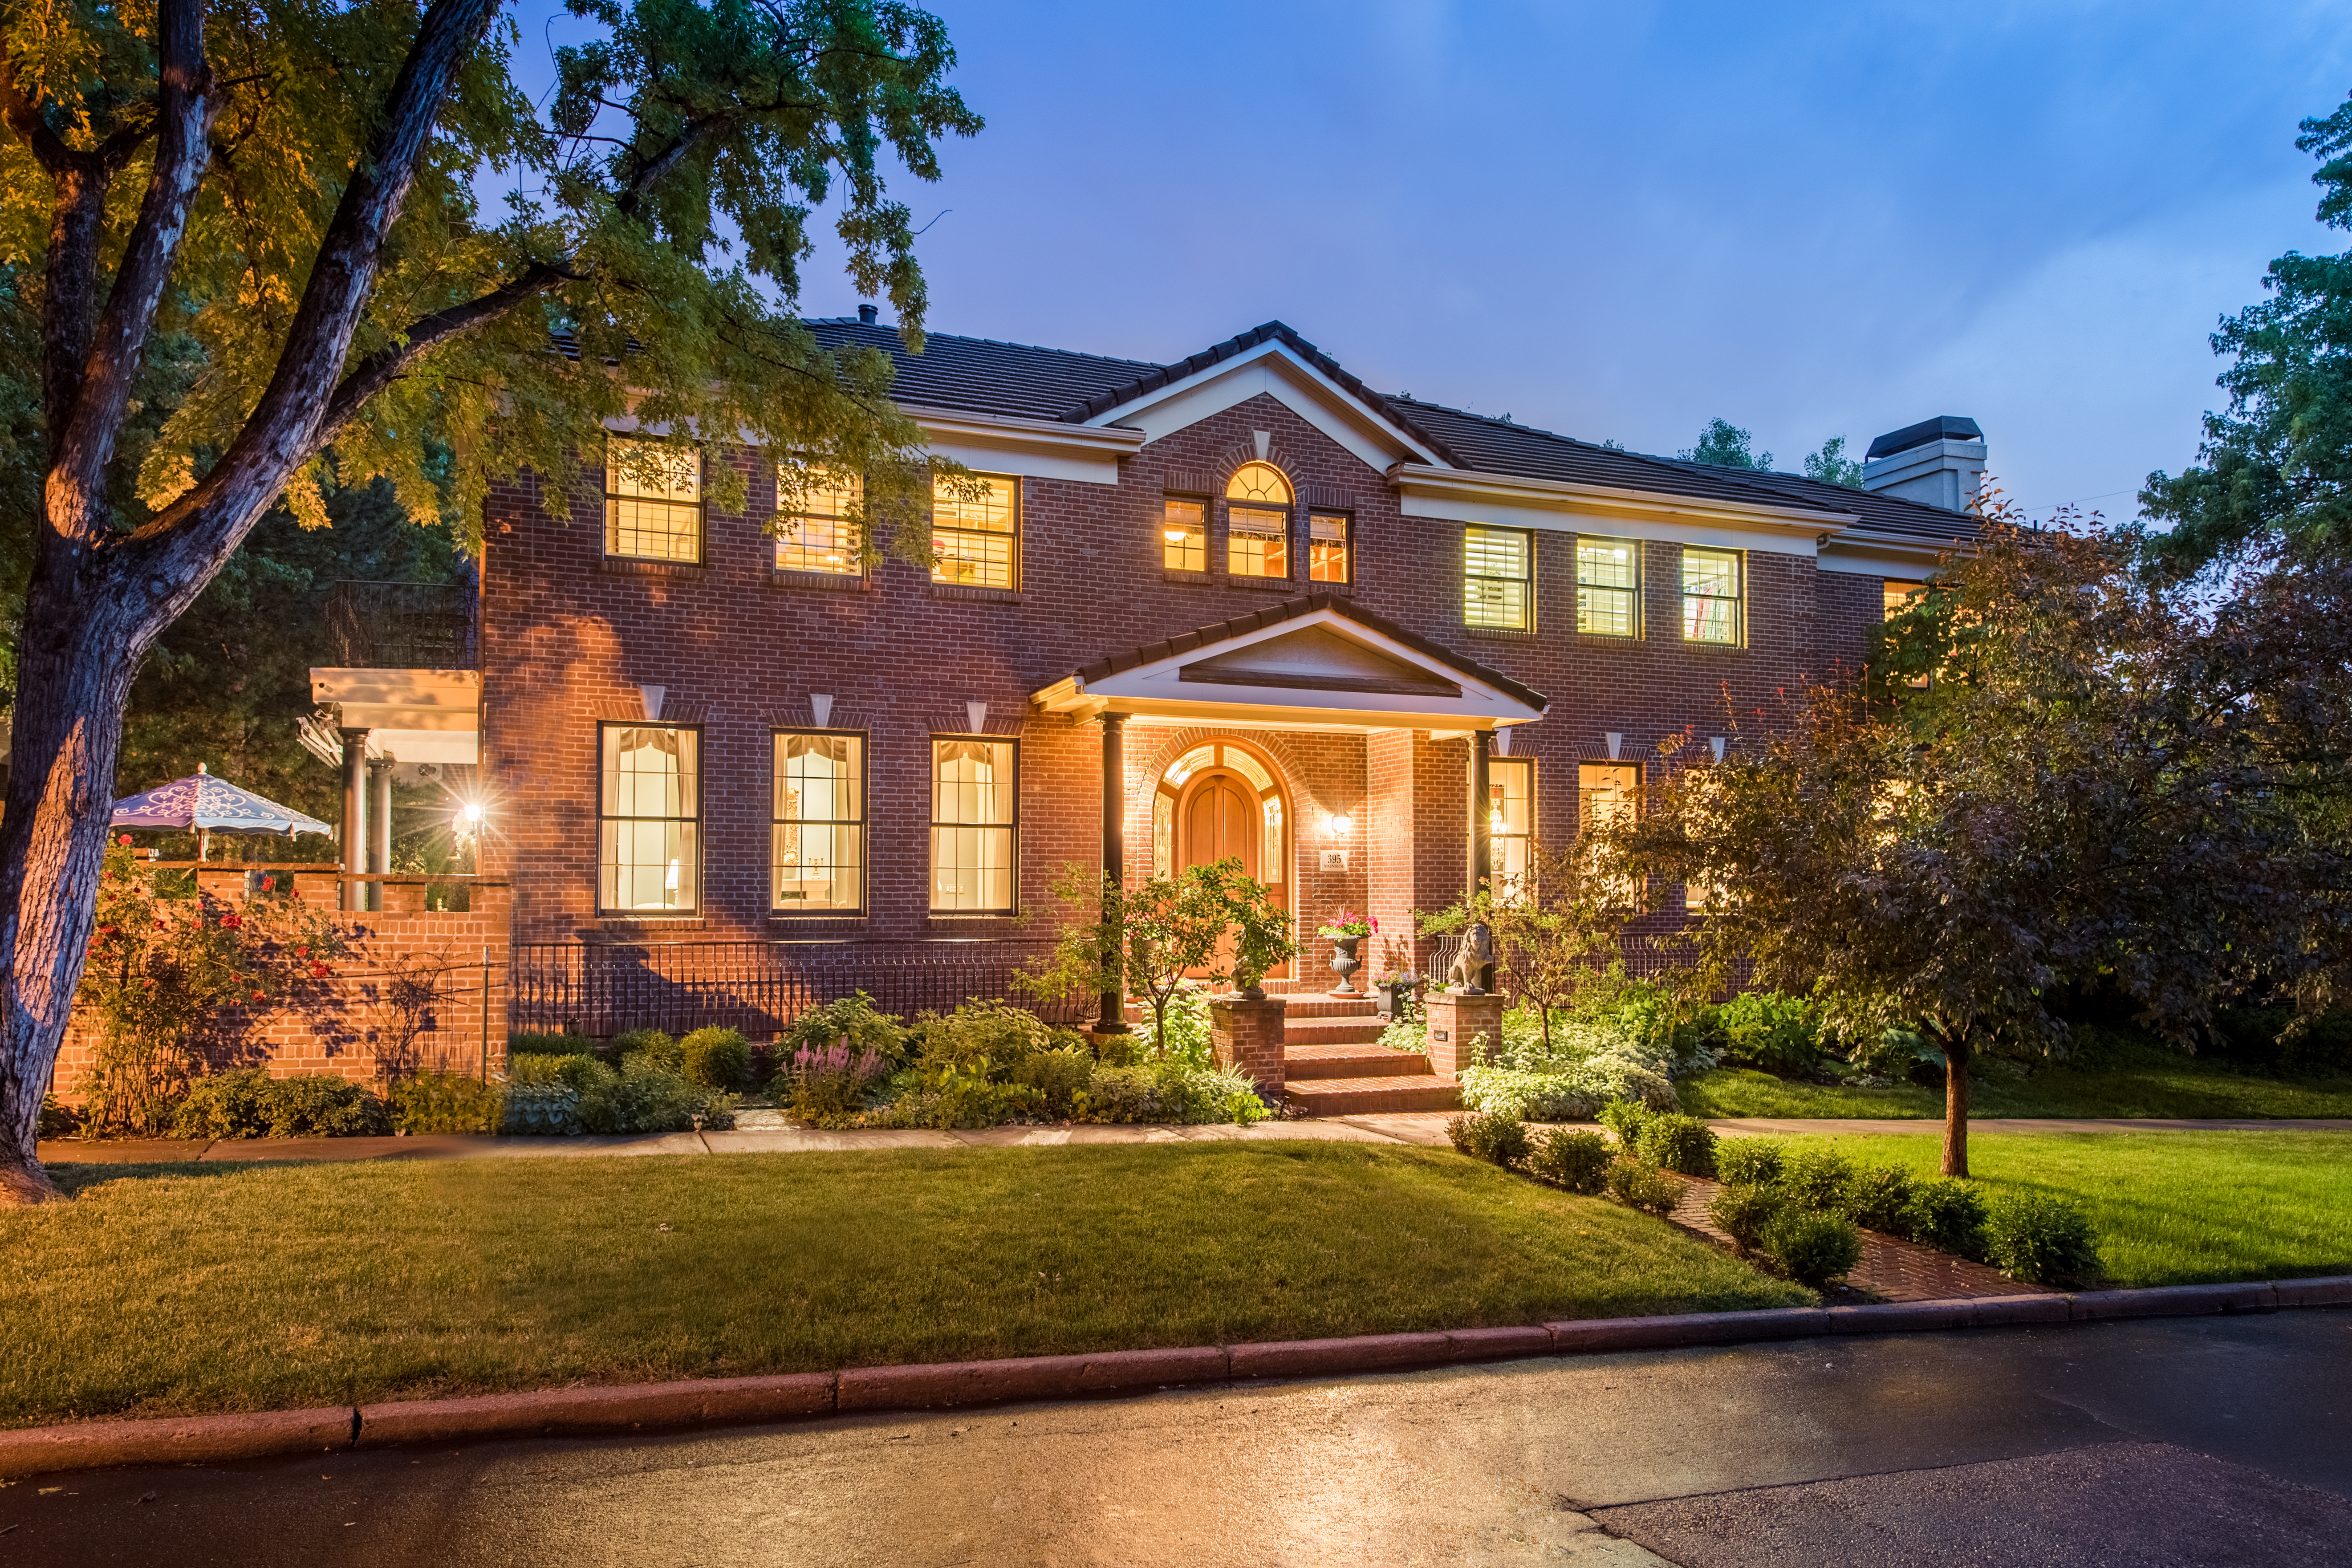 Pictured: 395 Monroe Street is listed for sale by LIV Sotheby's International Realty for $2,375,000.